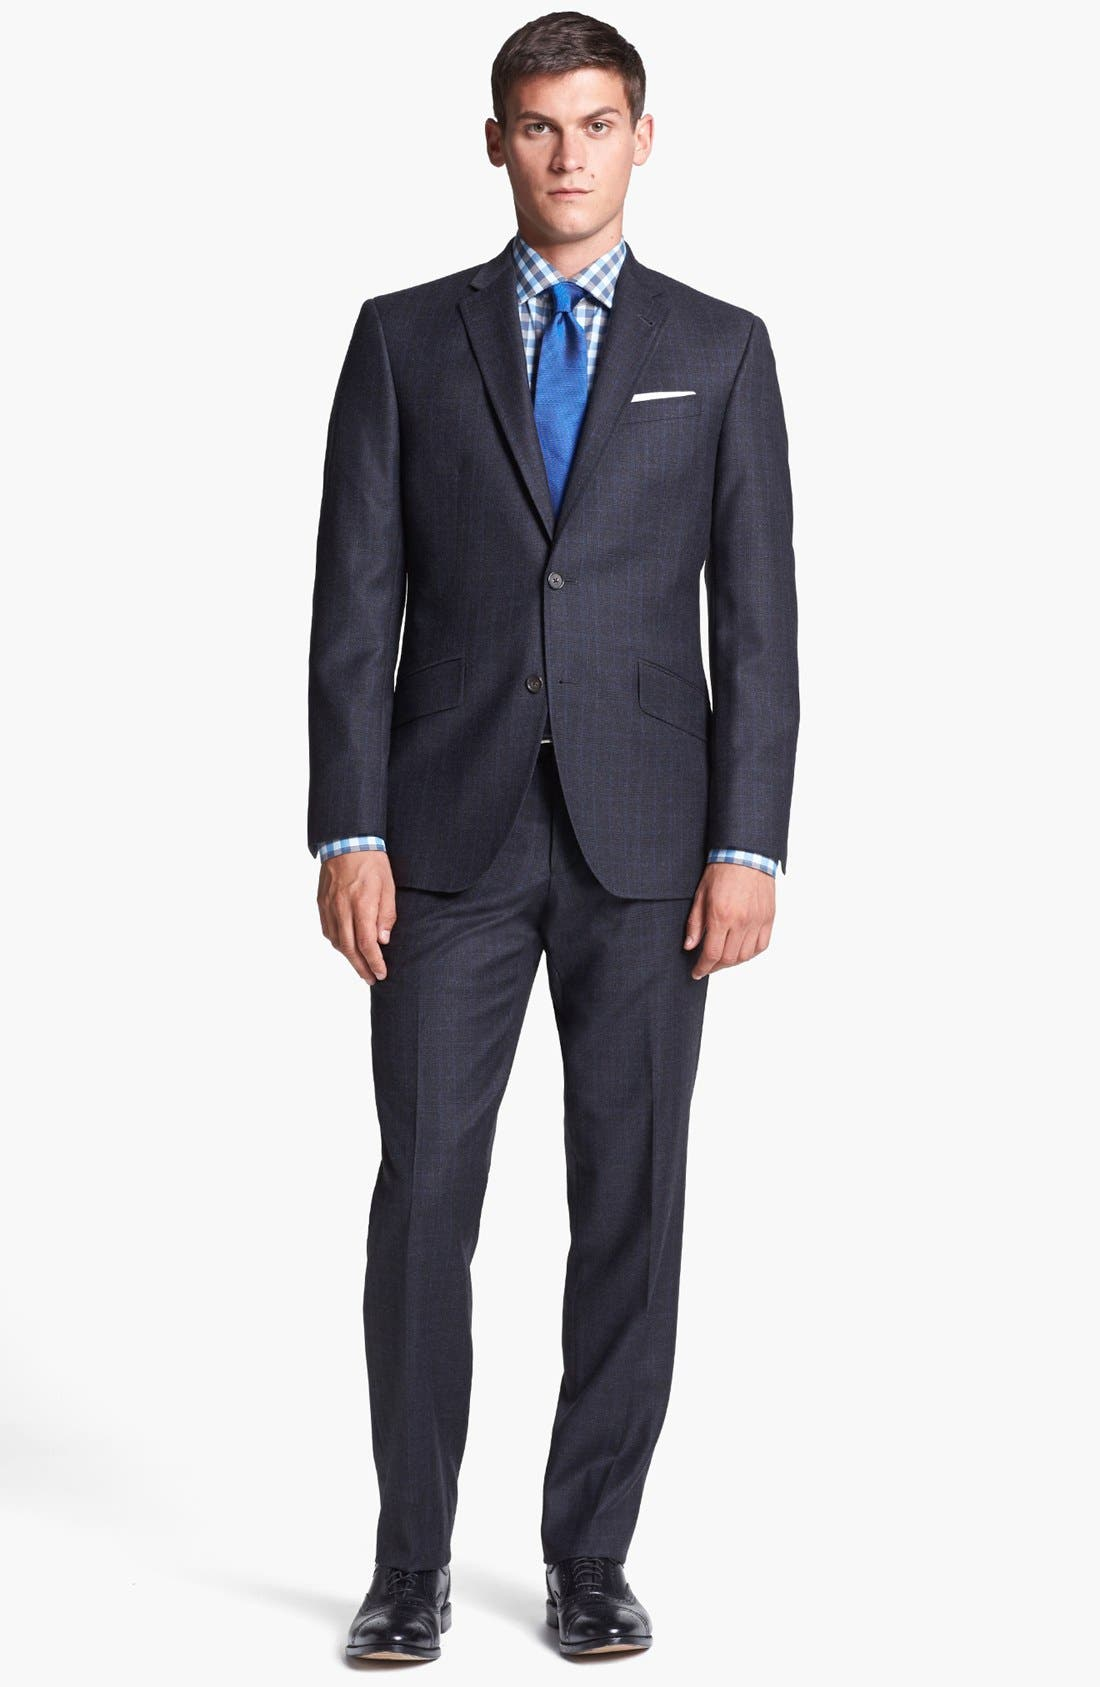 Alternate Image 1 Selected - Ted Baker London Suit & Calibrate Dress Shirt